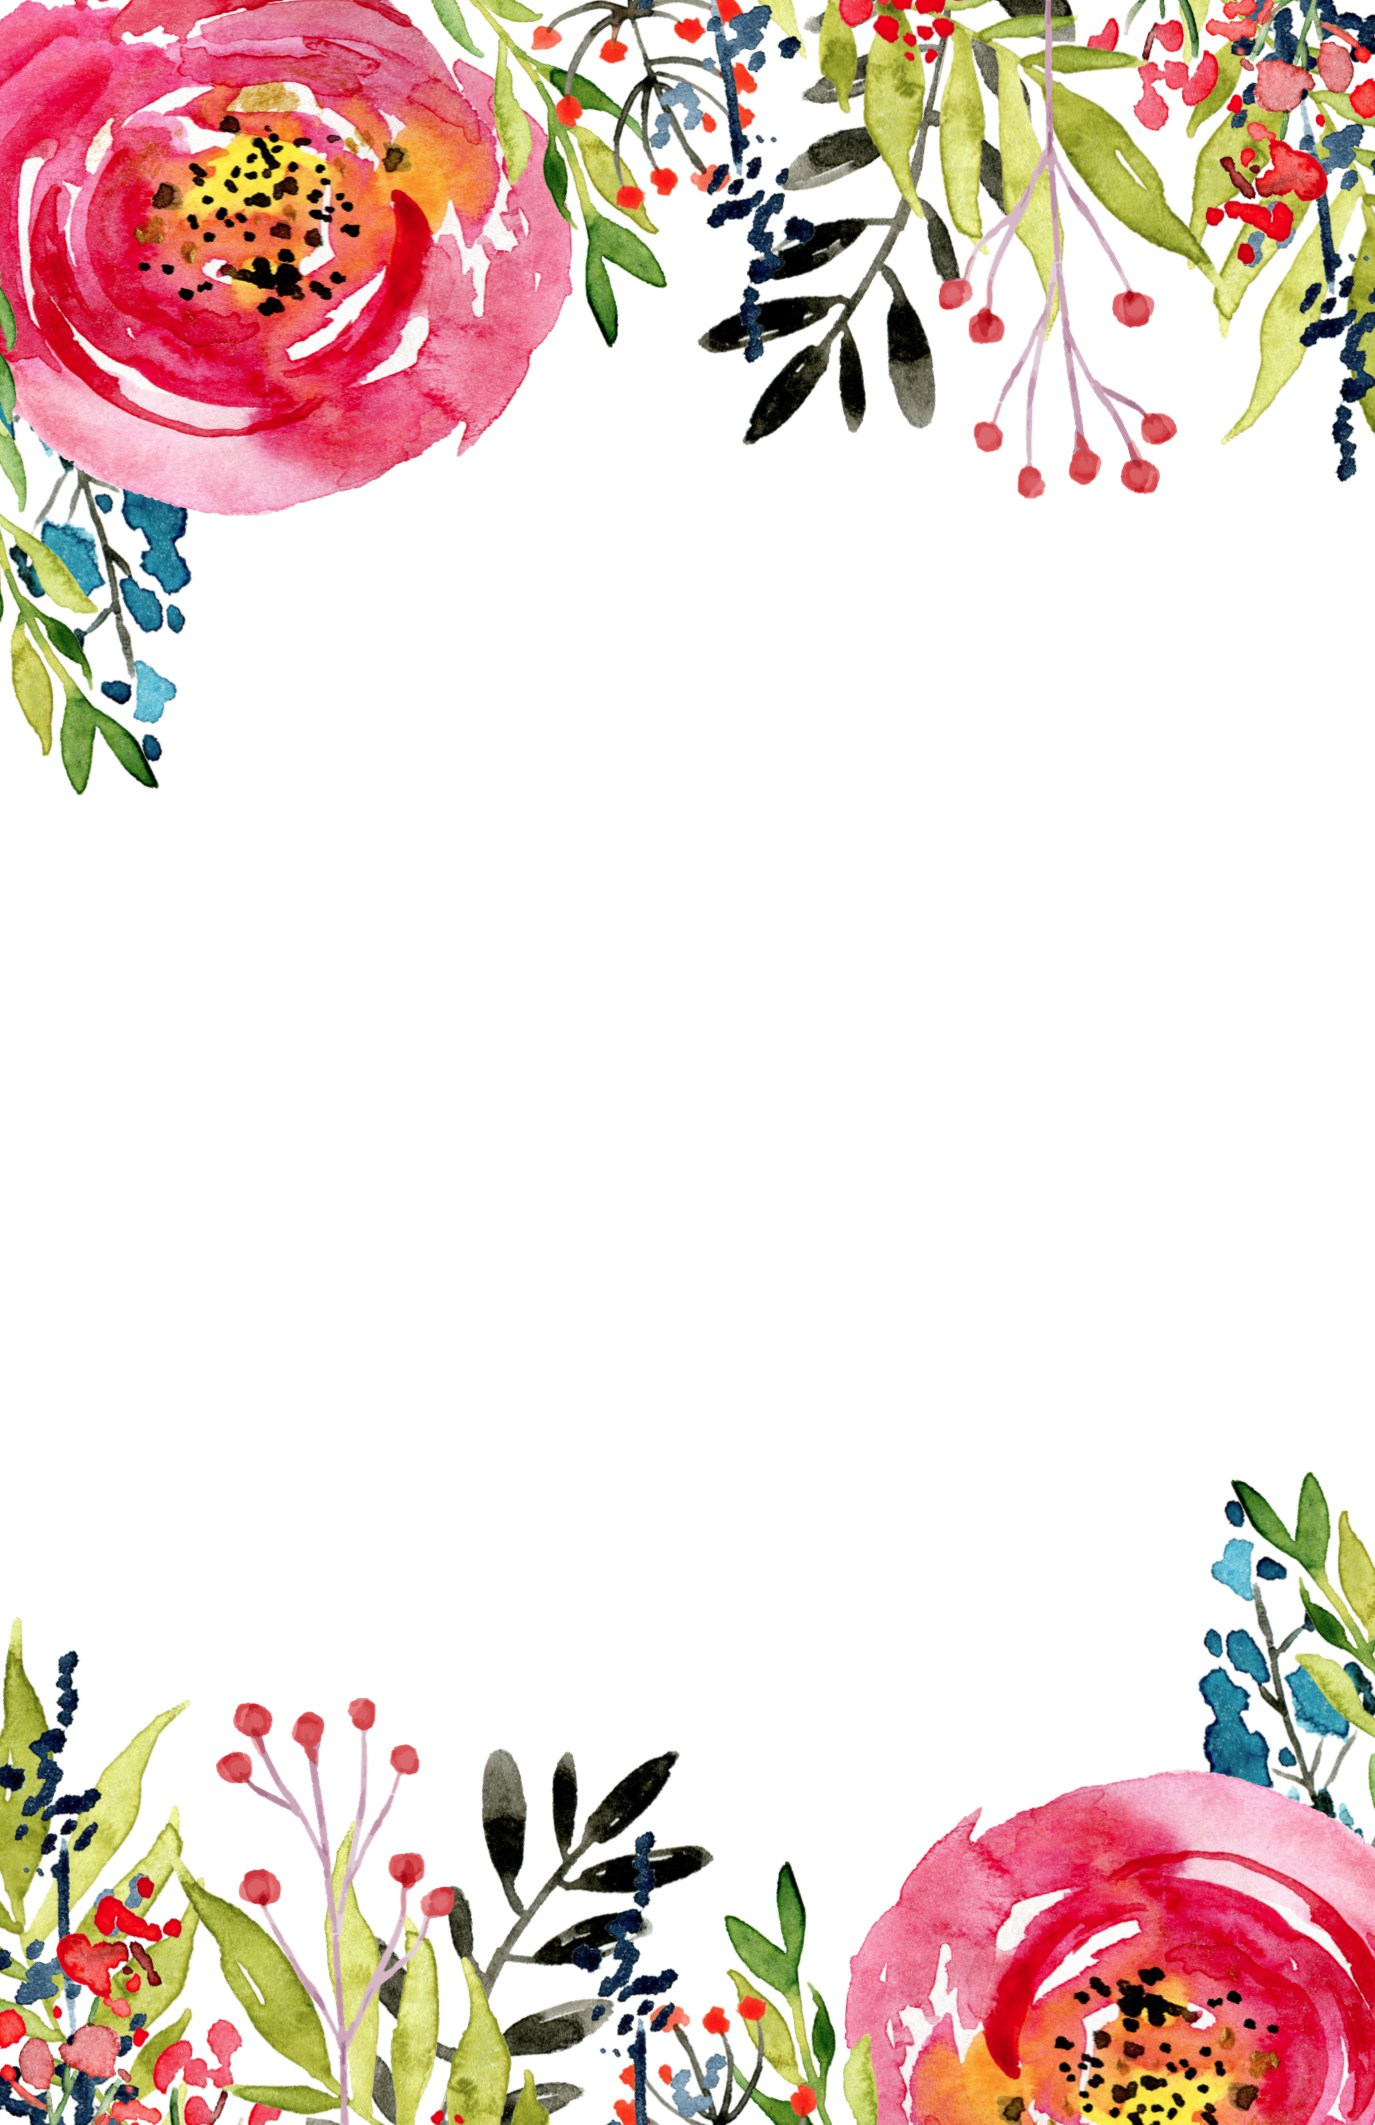 Floral Invitation Template free printable. Free invitation template for a birthday party, wedding, bridal shower, baby shower.